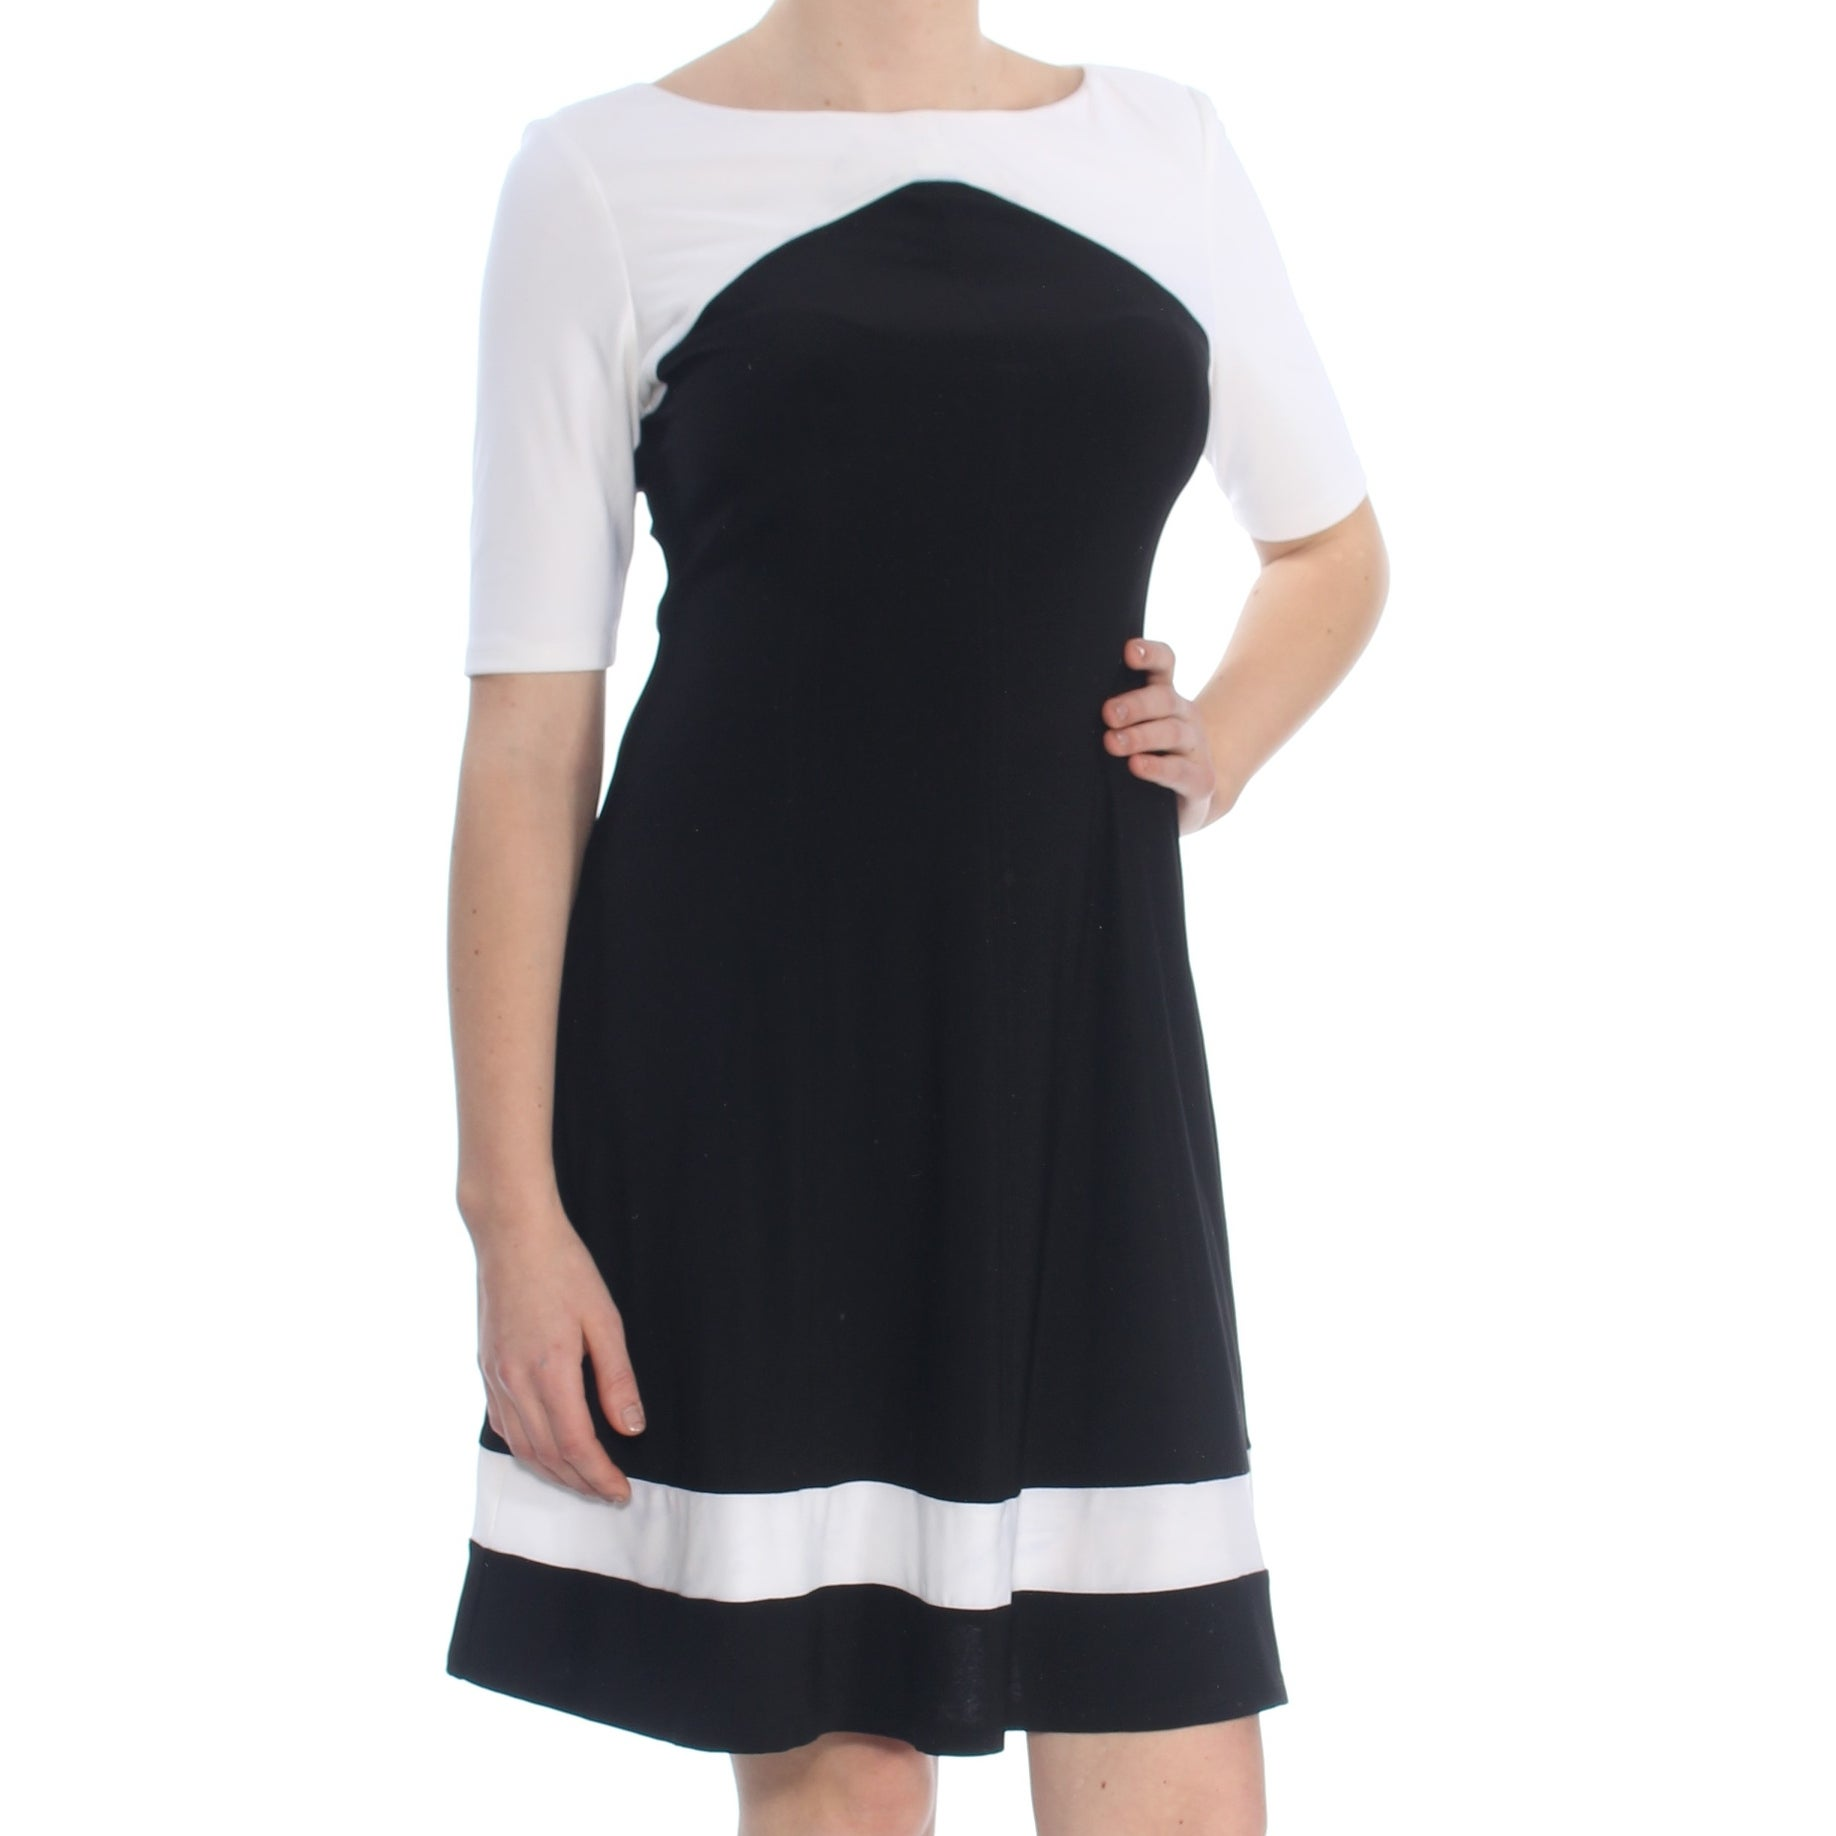 a8d4baf2f3b0 American Living Dresses | Find Great Women's Clothing Deals Shopping at  Overstock